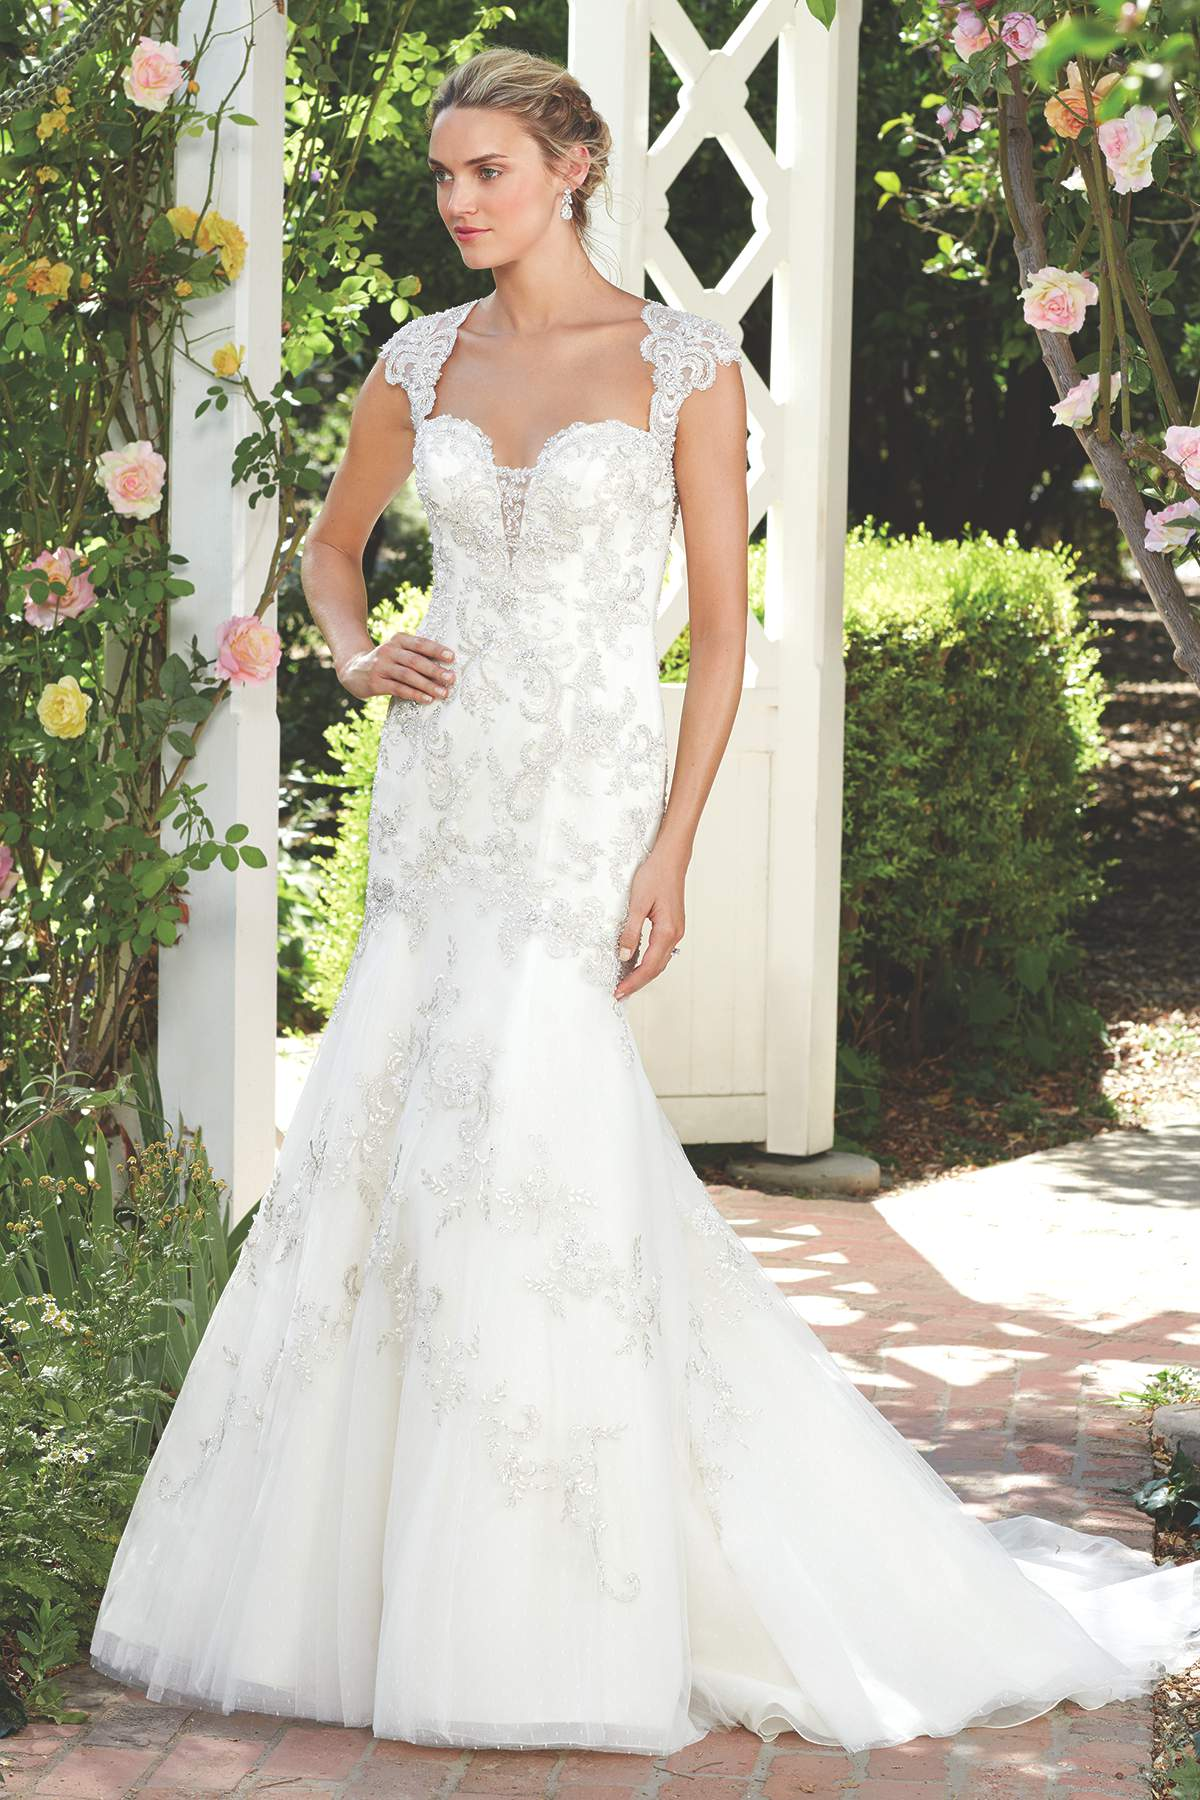 Hibiscus by Casablanca Bridal - Find Your Dream Dress